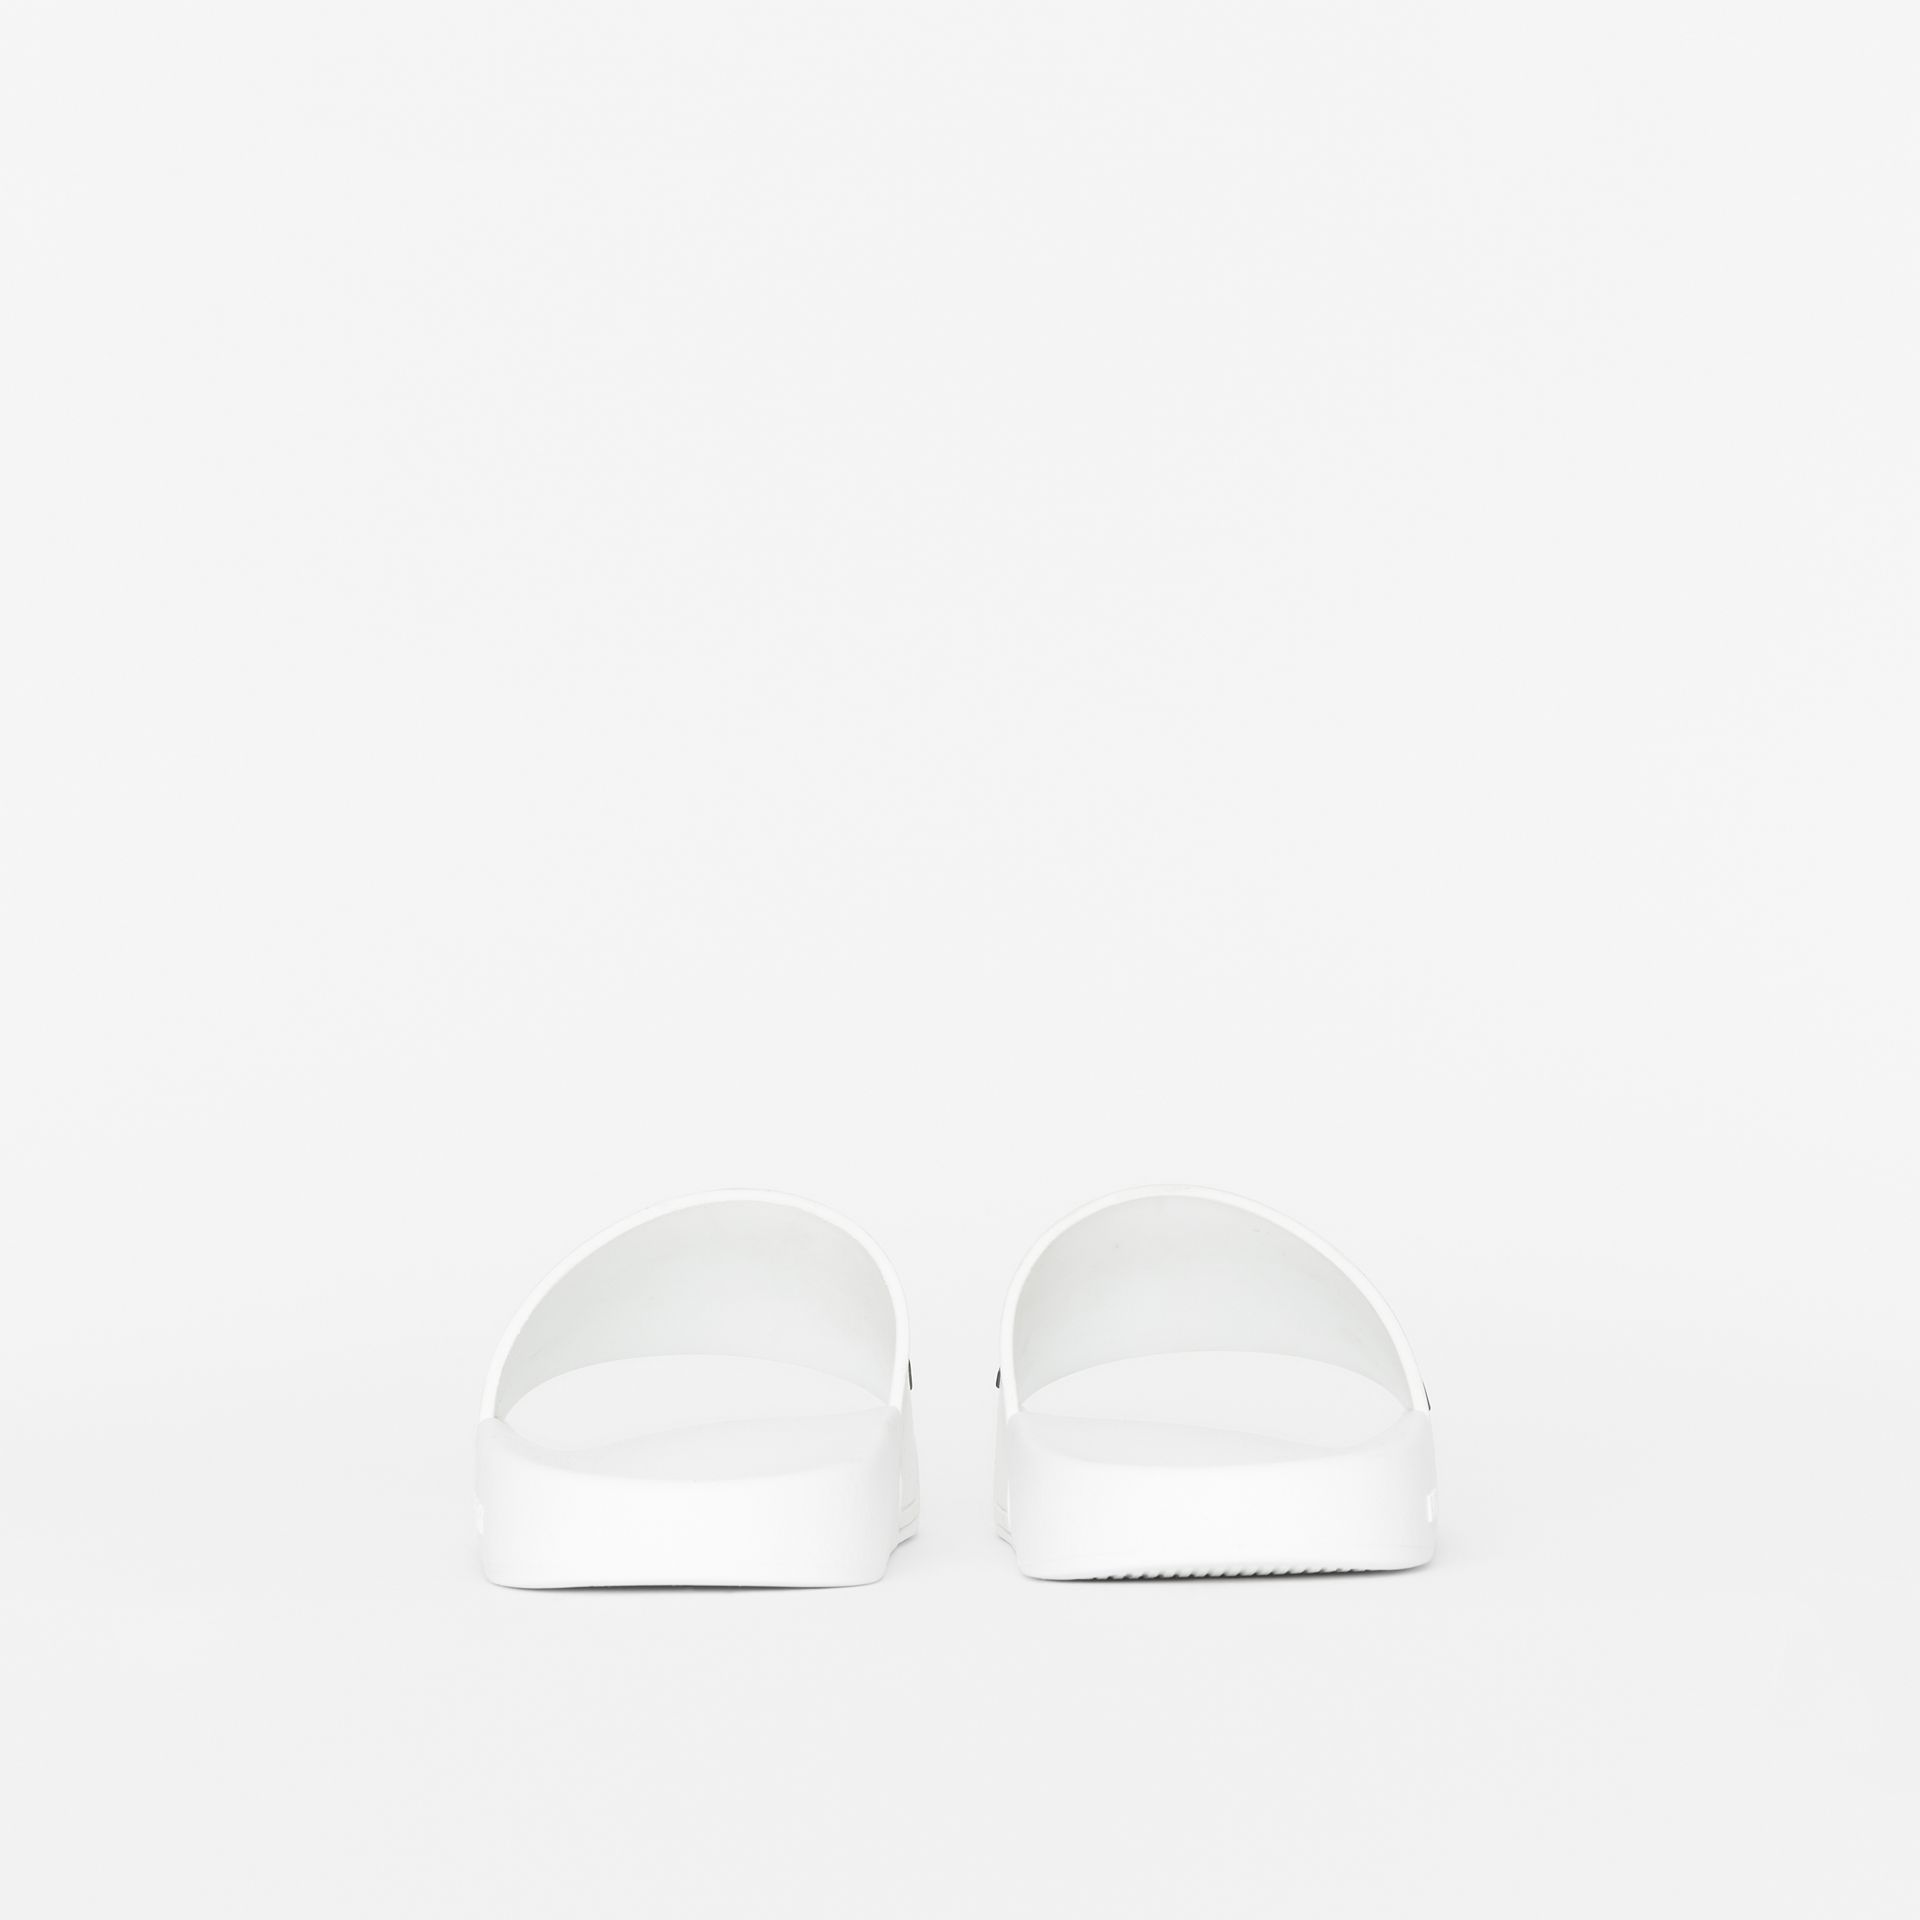 Kingdom Motif Slides in Optic White - Women | Burberry - gallery image 3